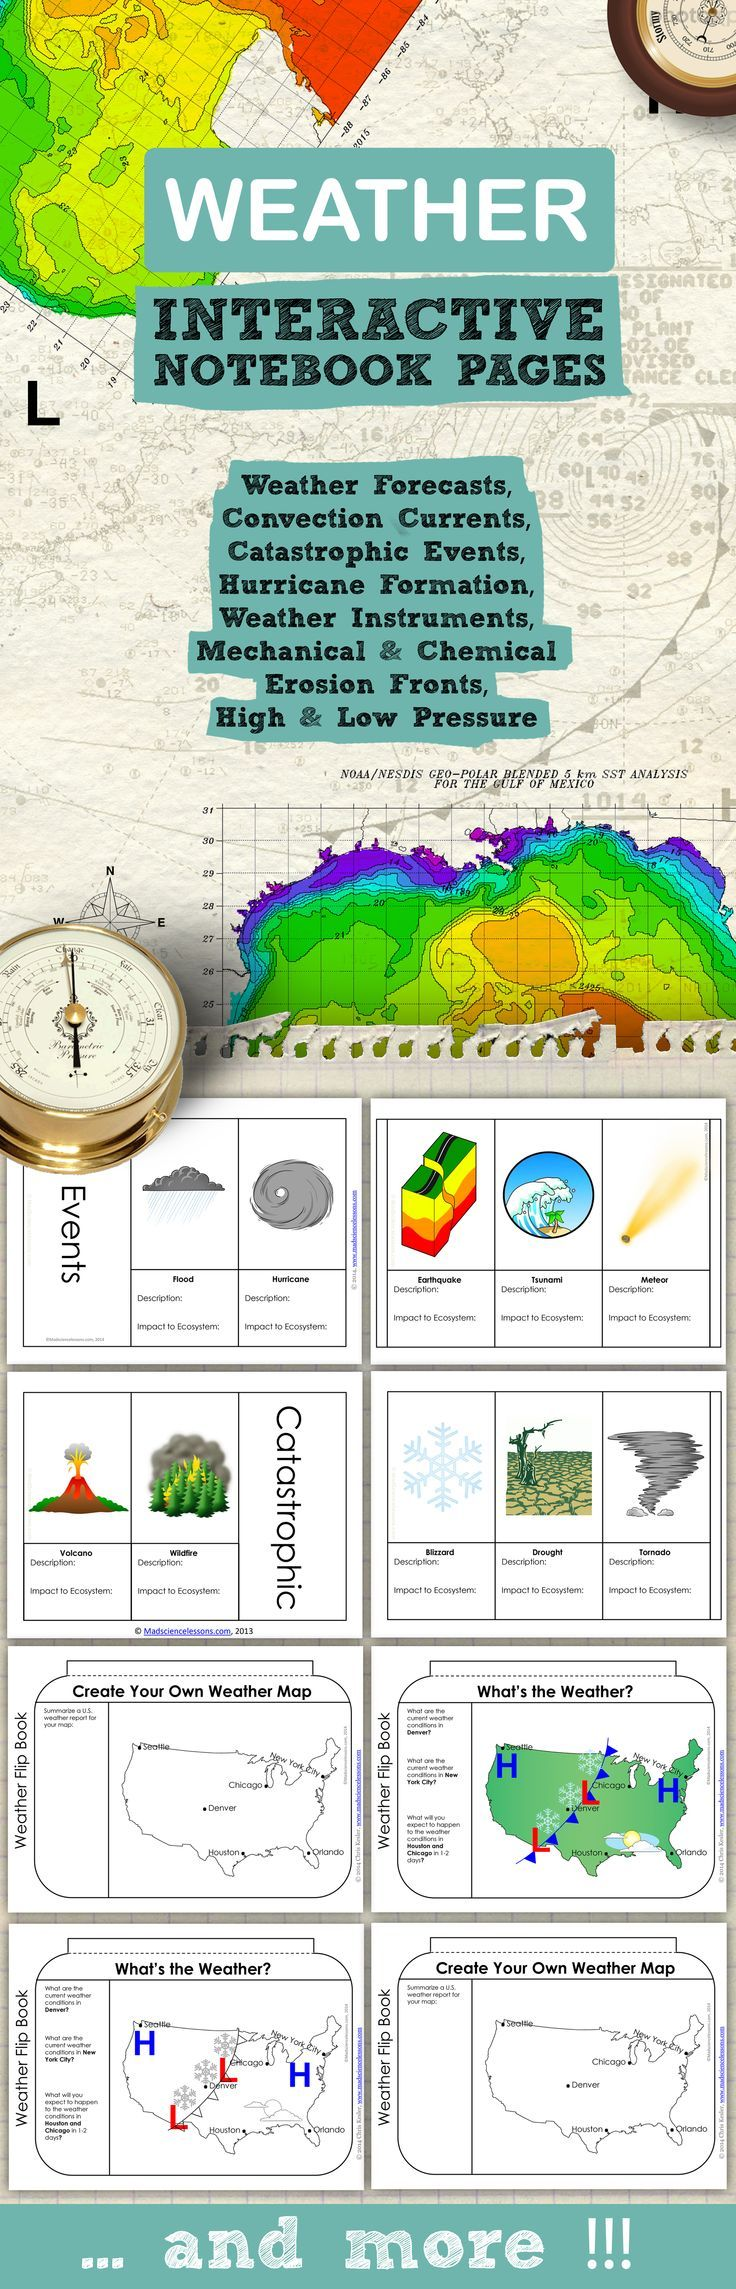 Weather for Interactive Science Notebooks and Journals - topics include Catastrophic Events, Weather Forecasting, Hot and Cold Fronts, HIgh and Low Pressure, Convection Currents, Hurricane Formation, Weather Instruments and more